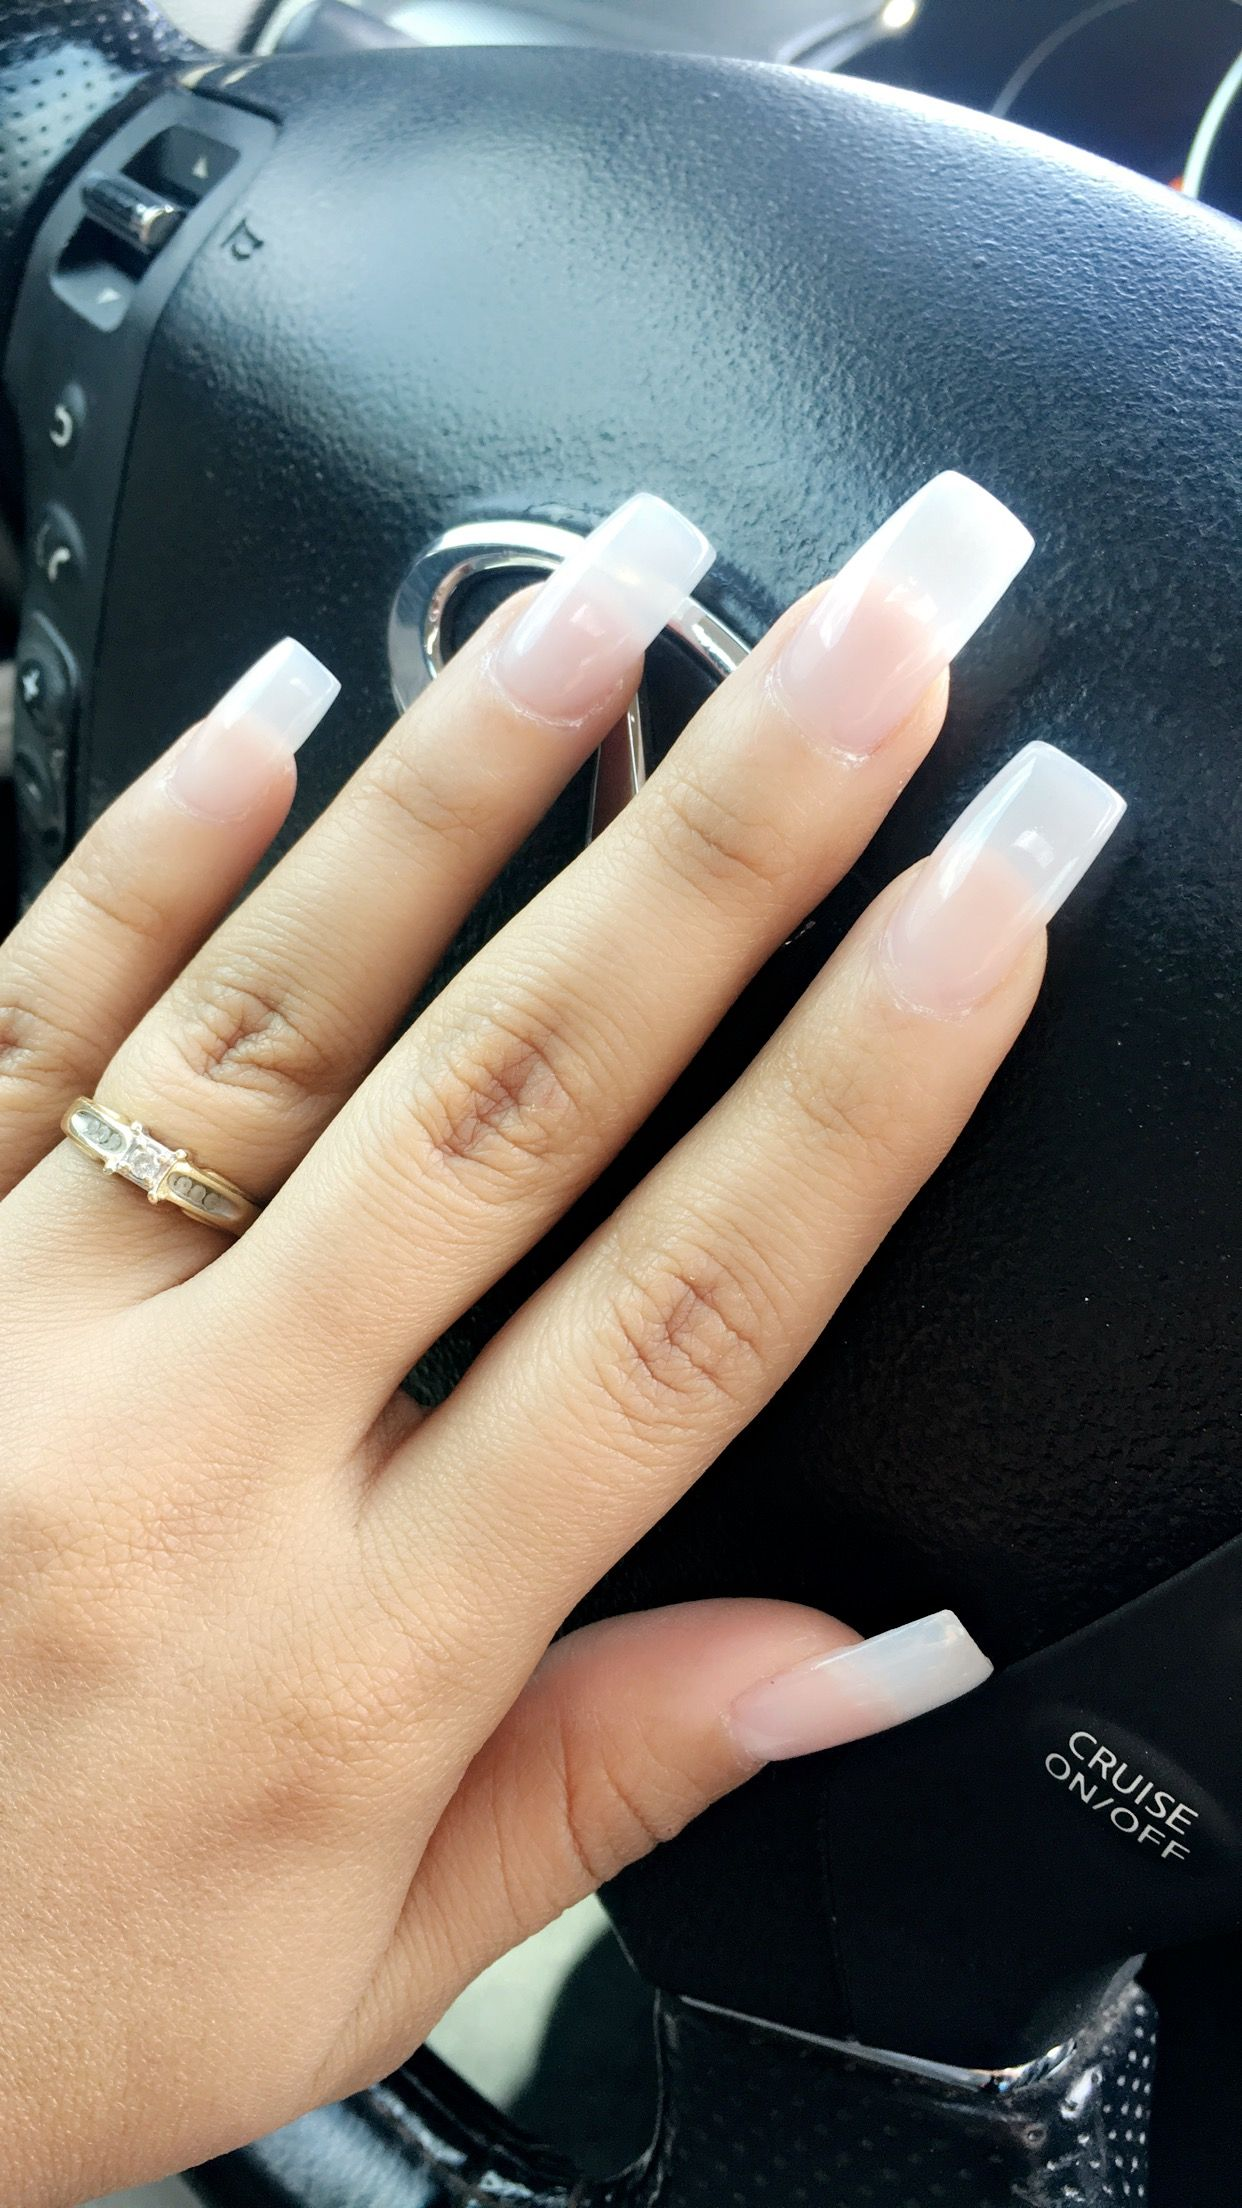 Natural Looking Nails In Love With Them Acrylic Square Shape Clear Powde Natural Looking Nails Long Square Acrylic Nails Natural Looking Acrylic Nails